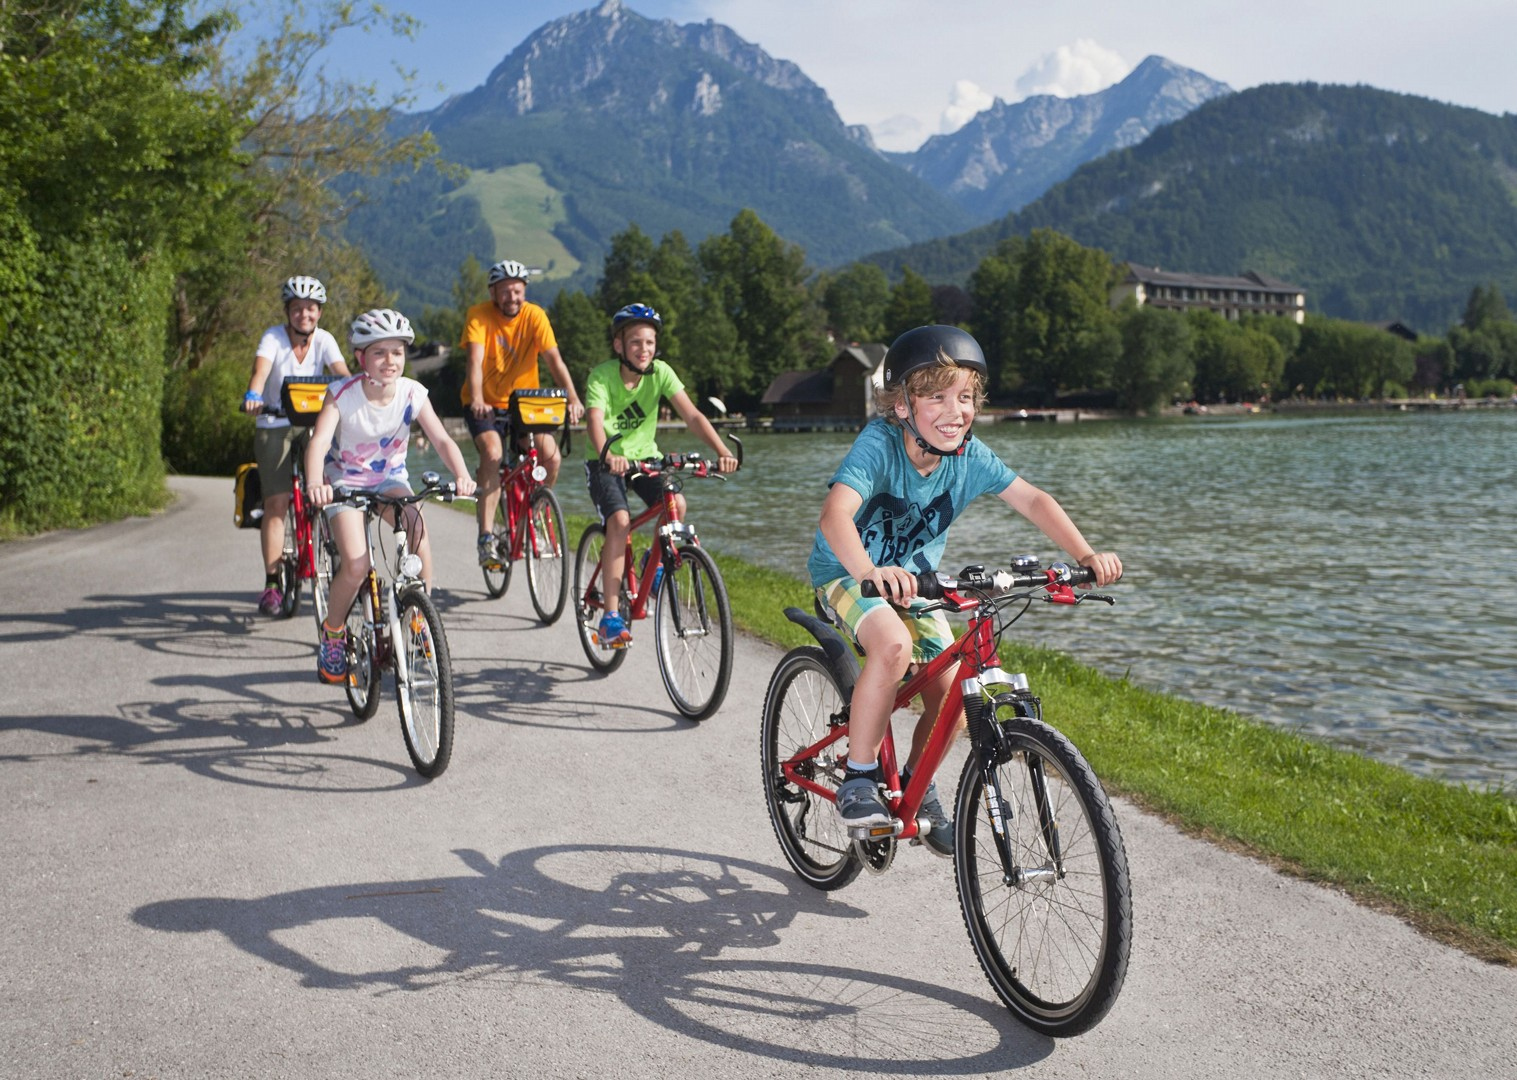 austria-austrian-lakes-self-guided-family-cycling-holiday.jpg - Austria - Austrian Lakes - Family Cycling